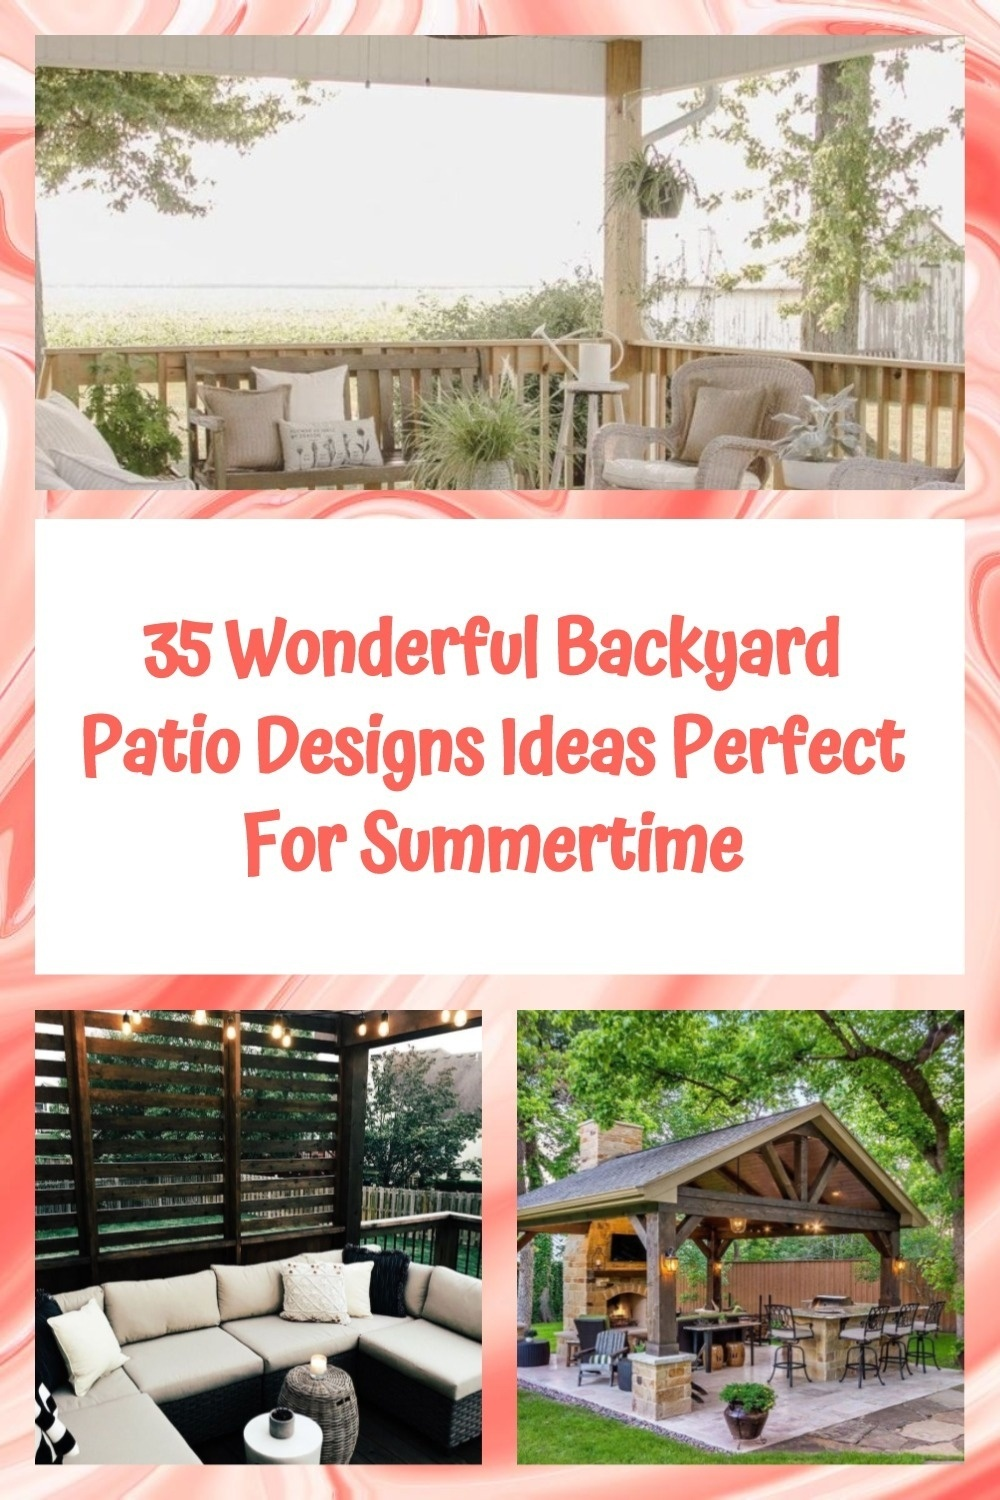 35 Wonderful Backyard Patio Designs Ideas Perfect For Summertime